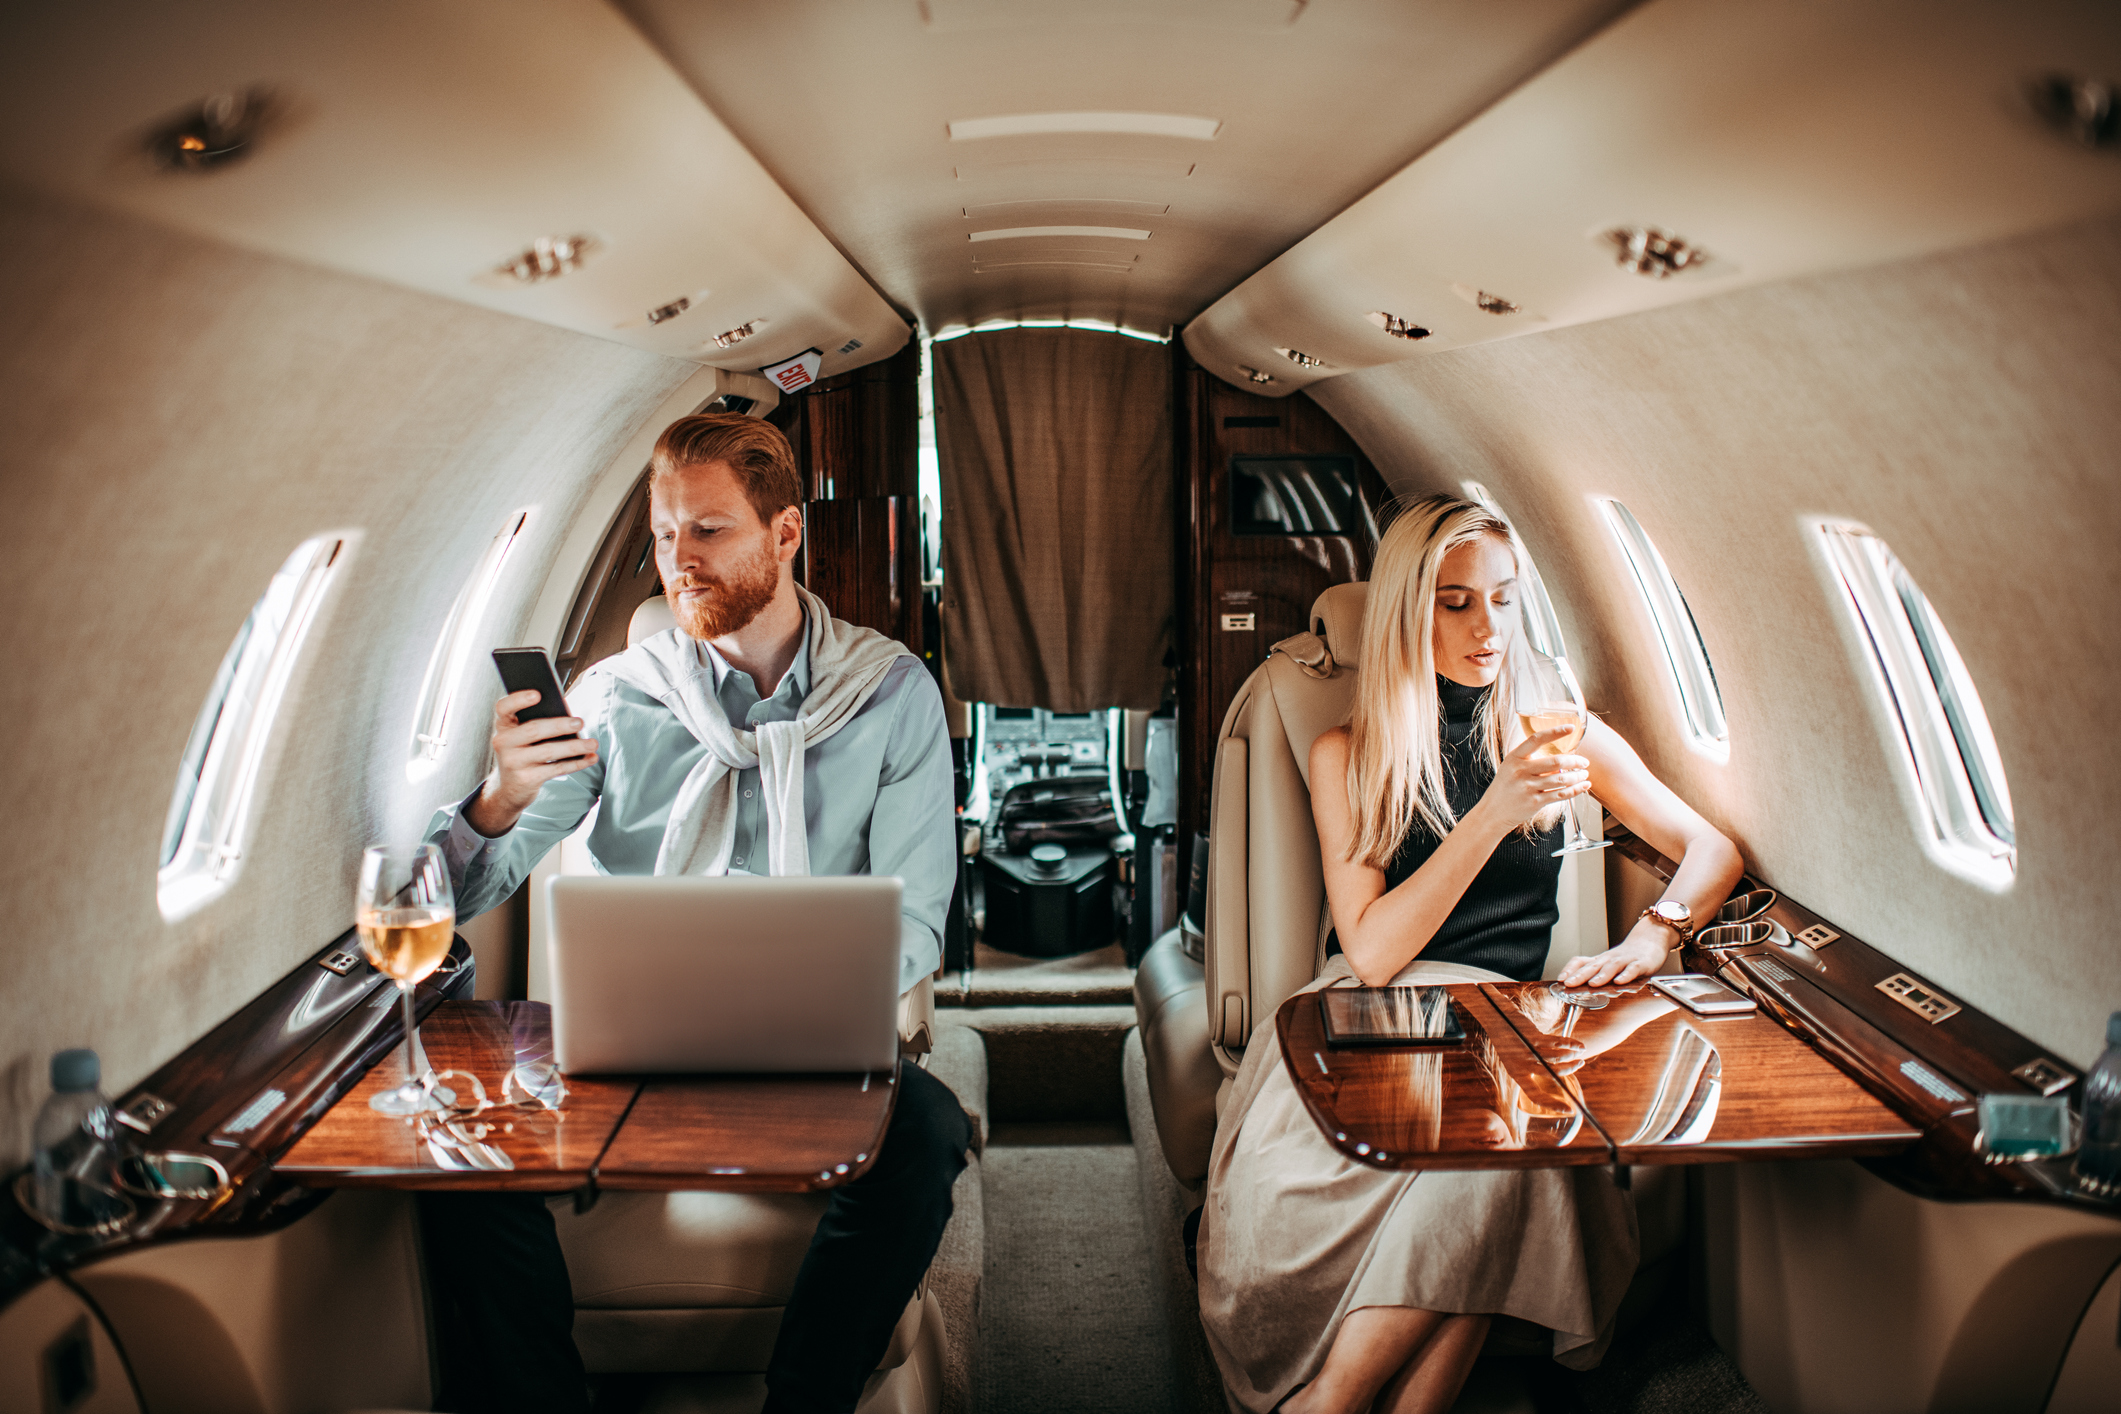 Rich couple ignoring each other on a private plane